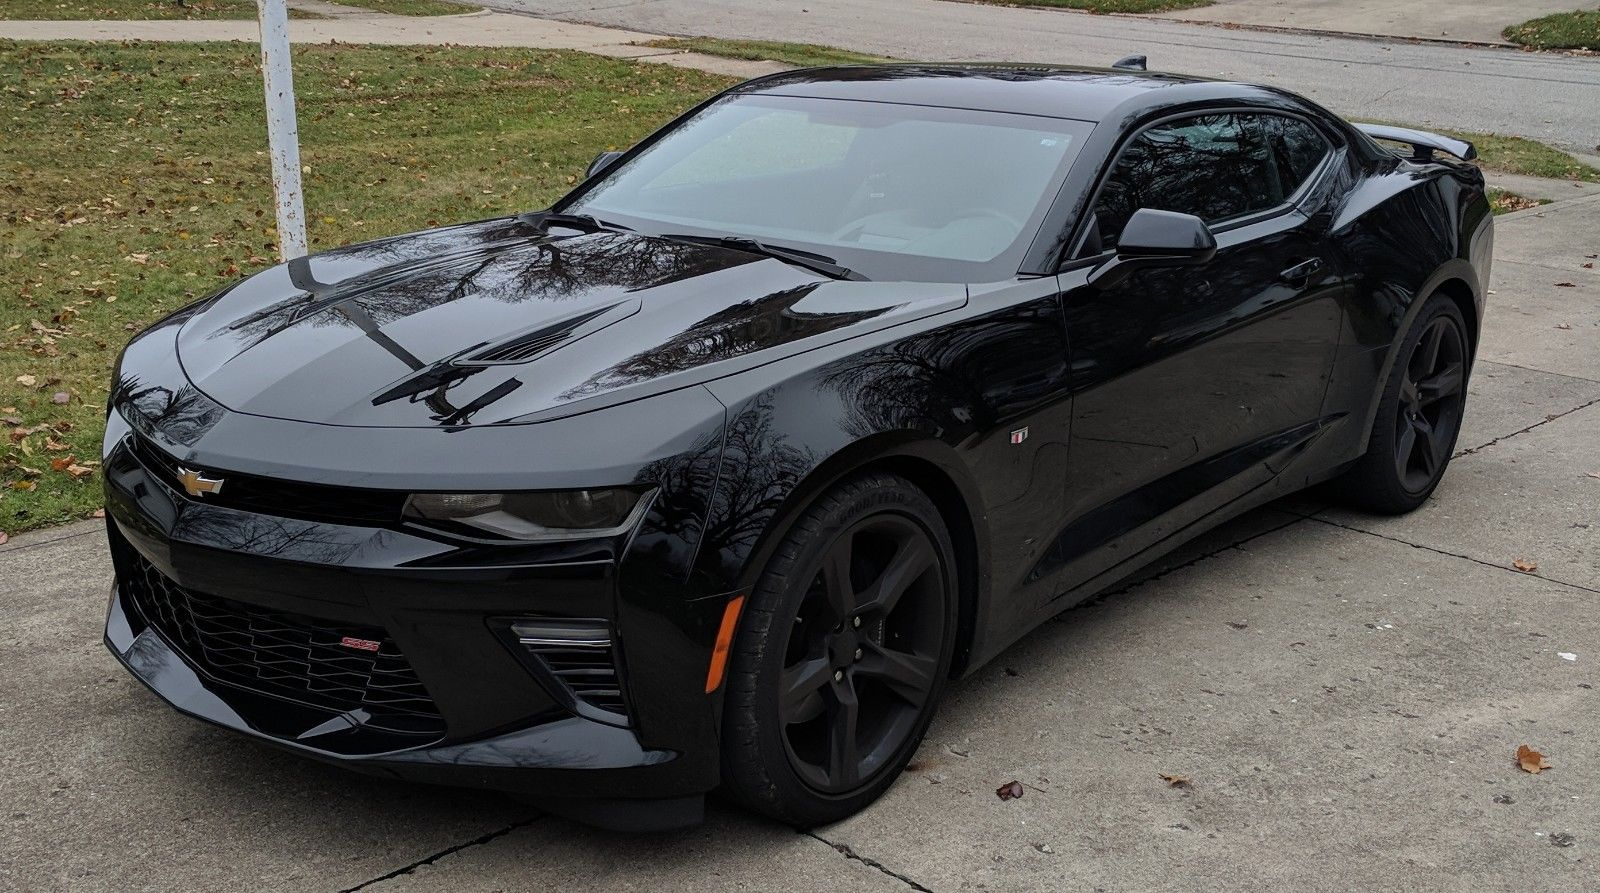 Camaro Zl1 Z28 Ss Lt Camaro Forums News Blog Reviews Html